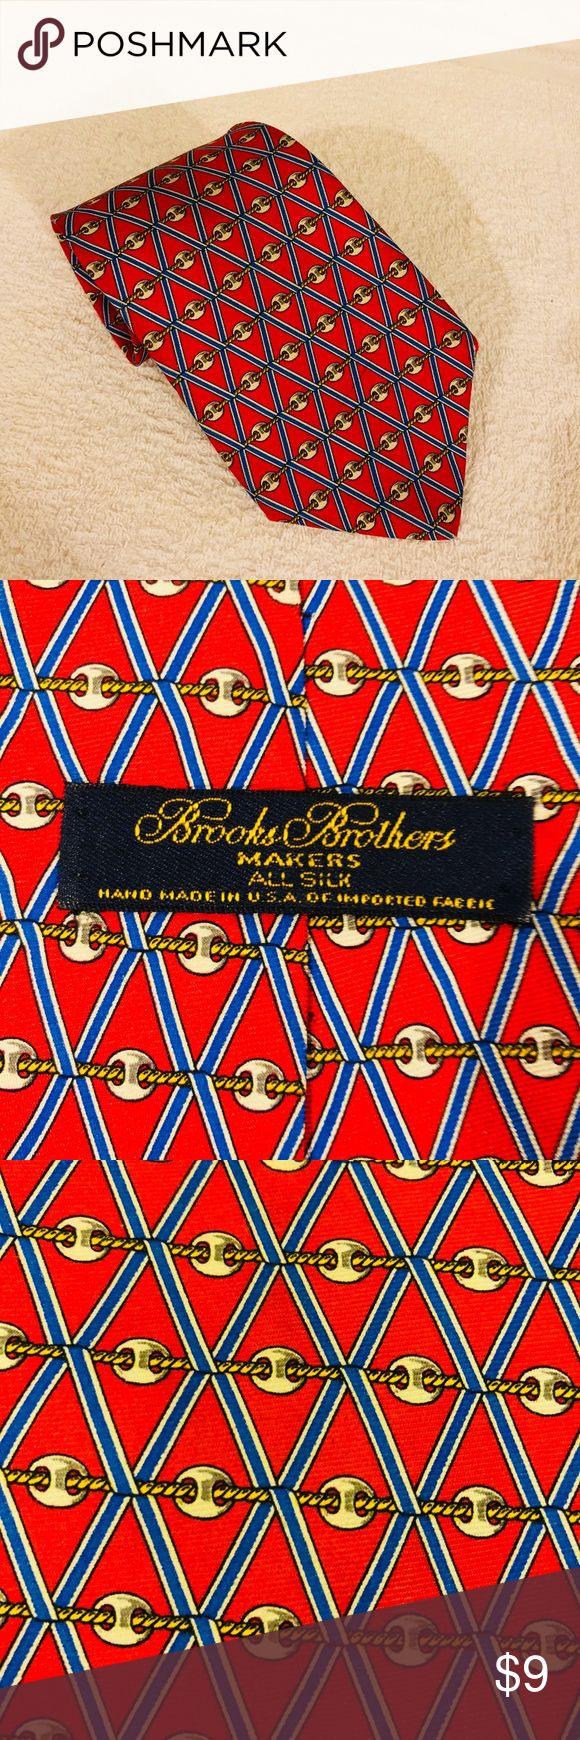 Brooks Brothers Red w/ Gold & Blue Horse Bit Tie Brooks Brothers Red With Gold, Blue and White Horse Bit Link Check Silk Necktie! Like new! Please make reasonable offers and bundle! Ask questions! Brooks Brothers Accessories Ties